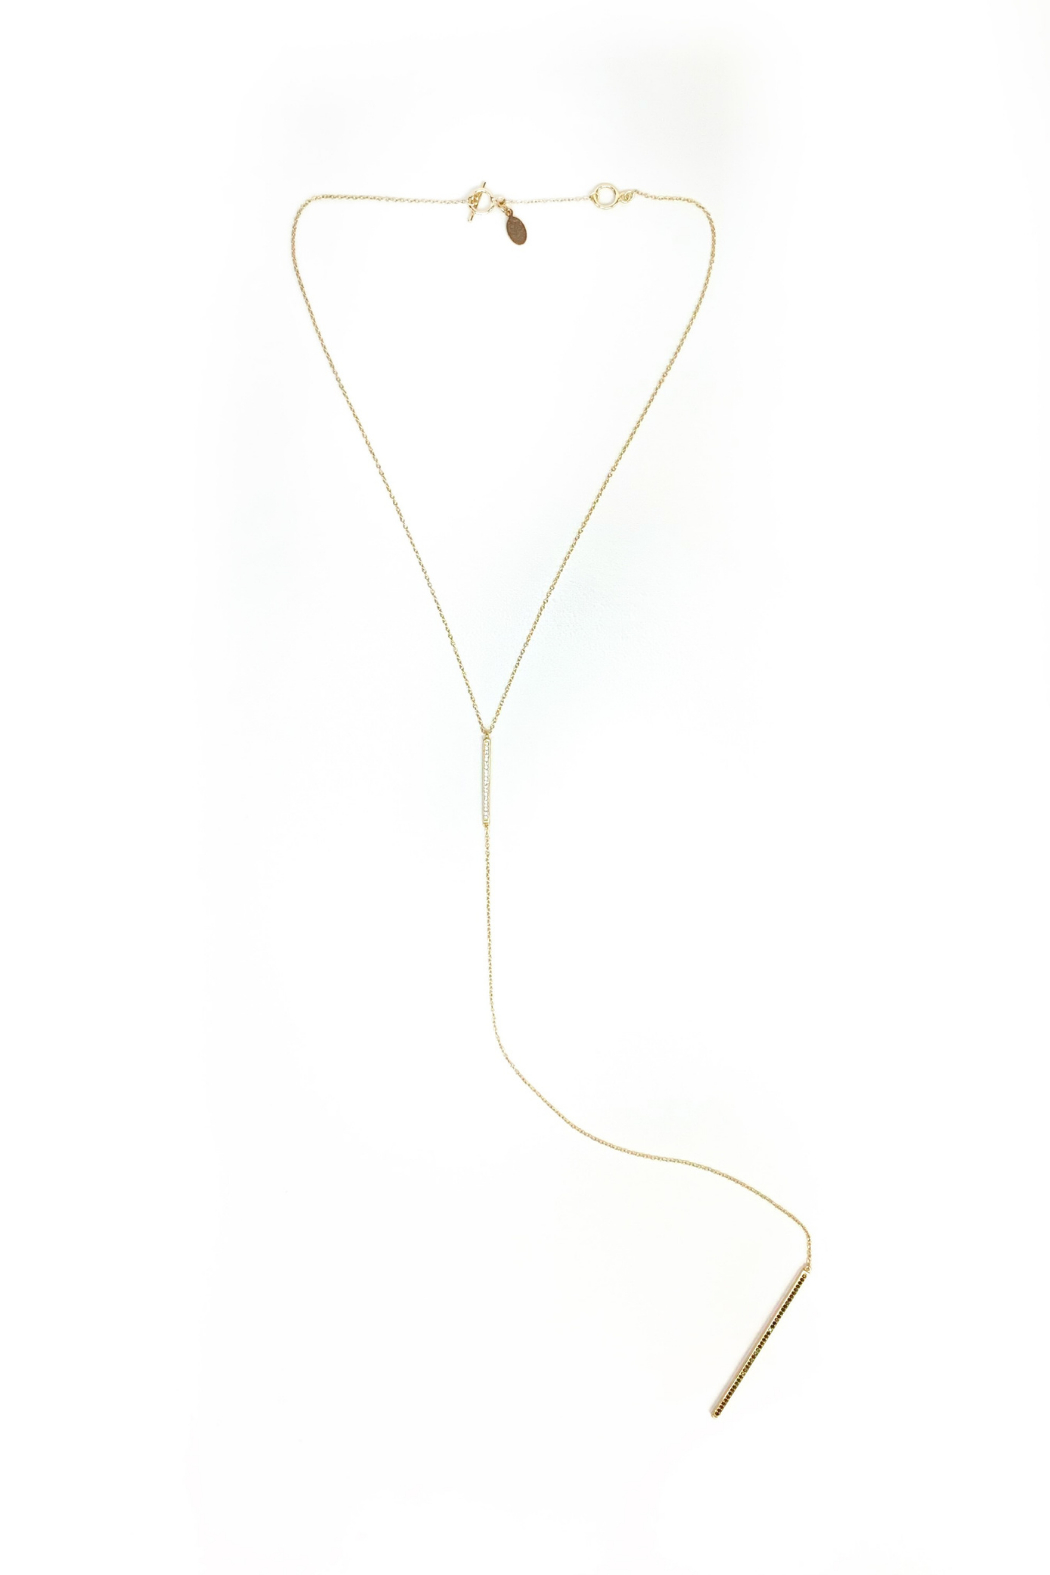 Jamie Nicole Jewelry Blk & CZ Double Bar Y Necklace - Front Full Image